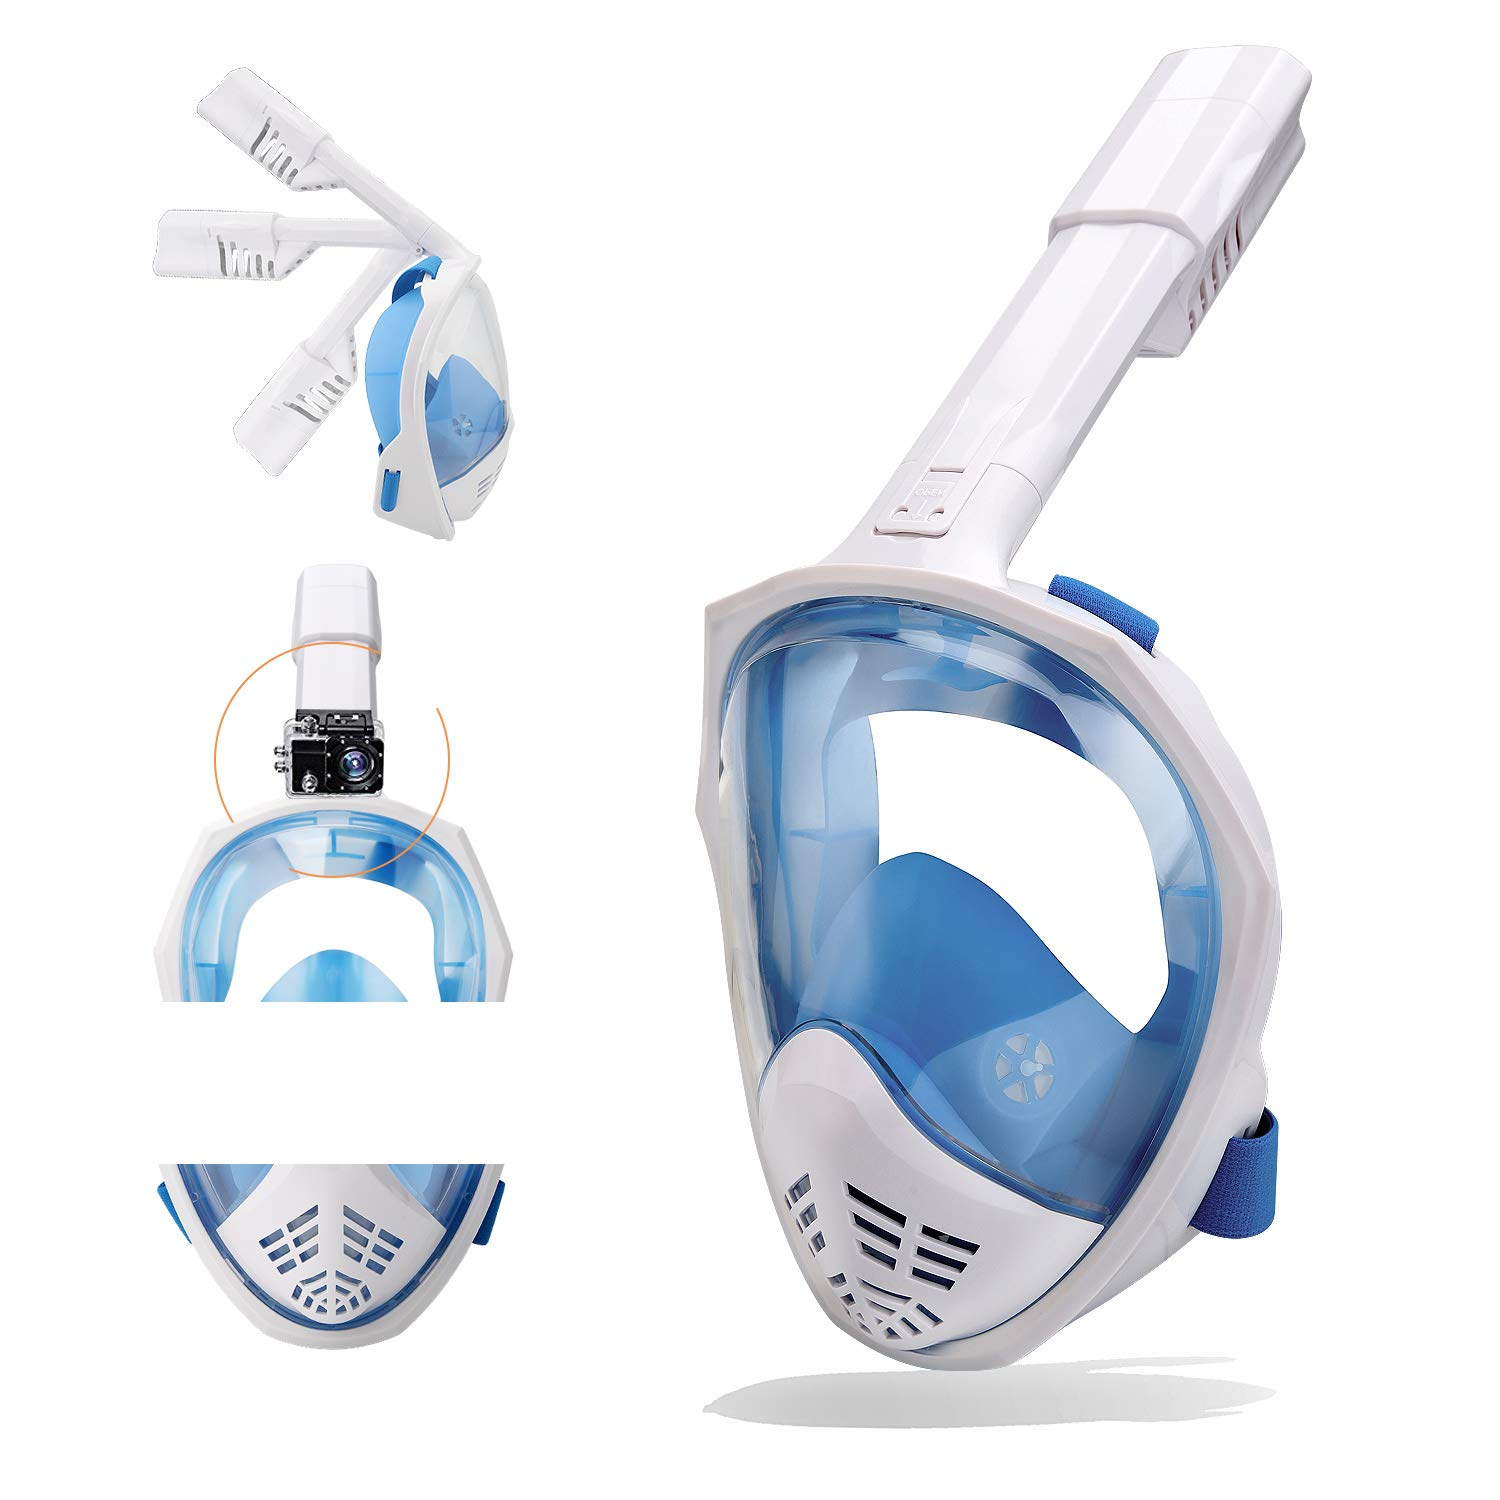 Gihery Snorkel Mask Full Face, Foldable Snorkeling Mask for Adults Breathable 180 Degree View AntiFog Antileak by Gihery